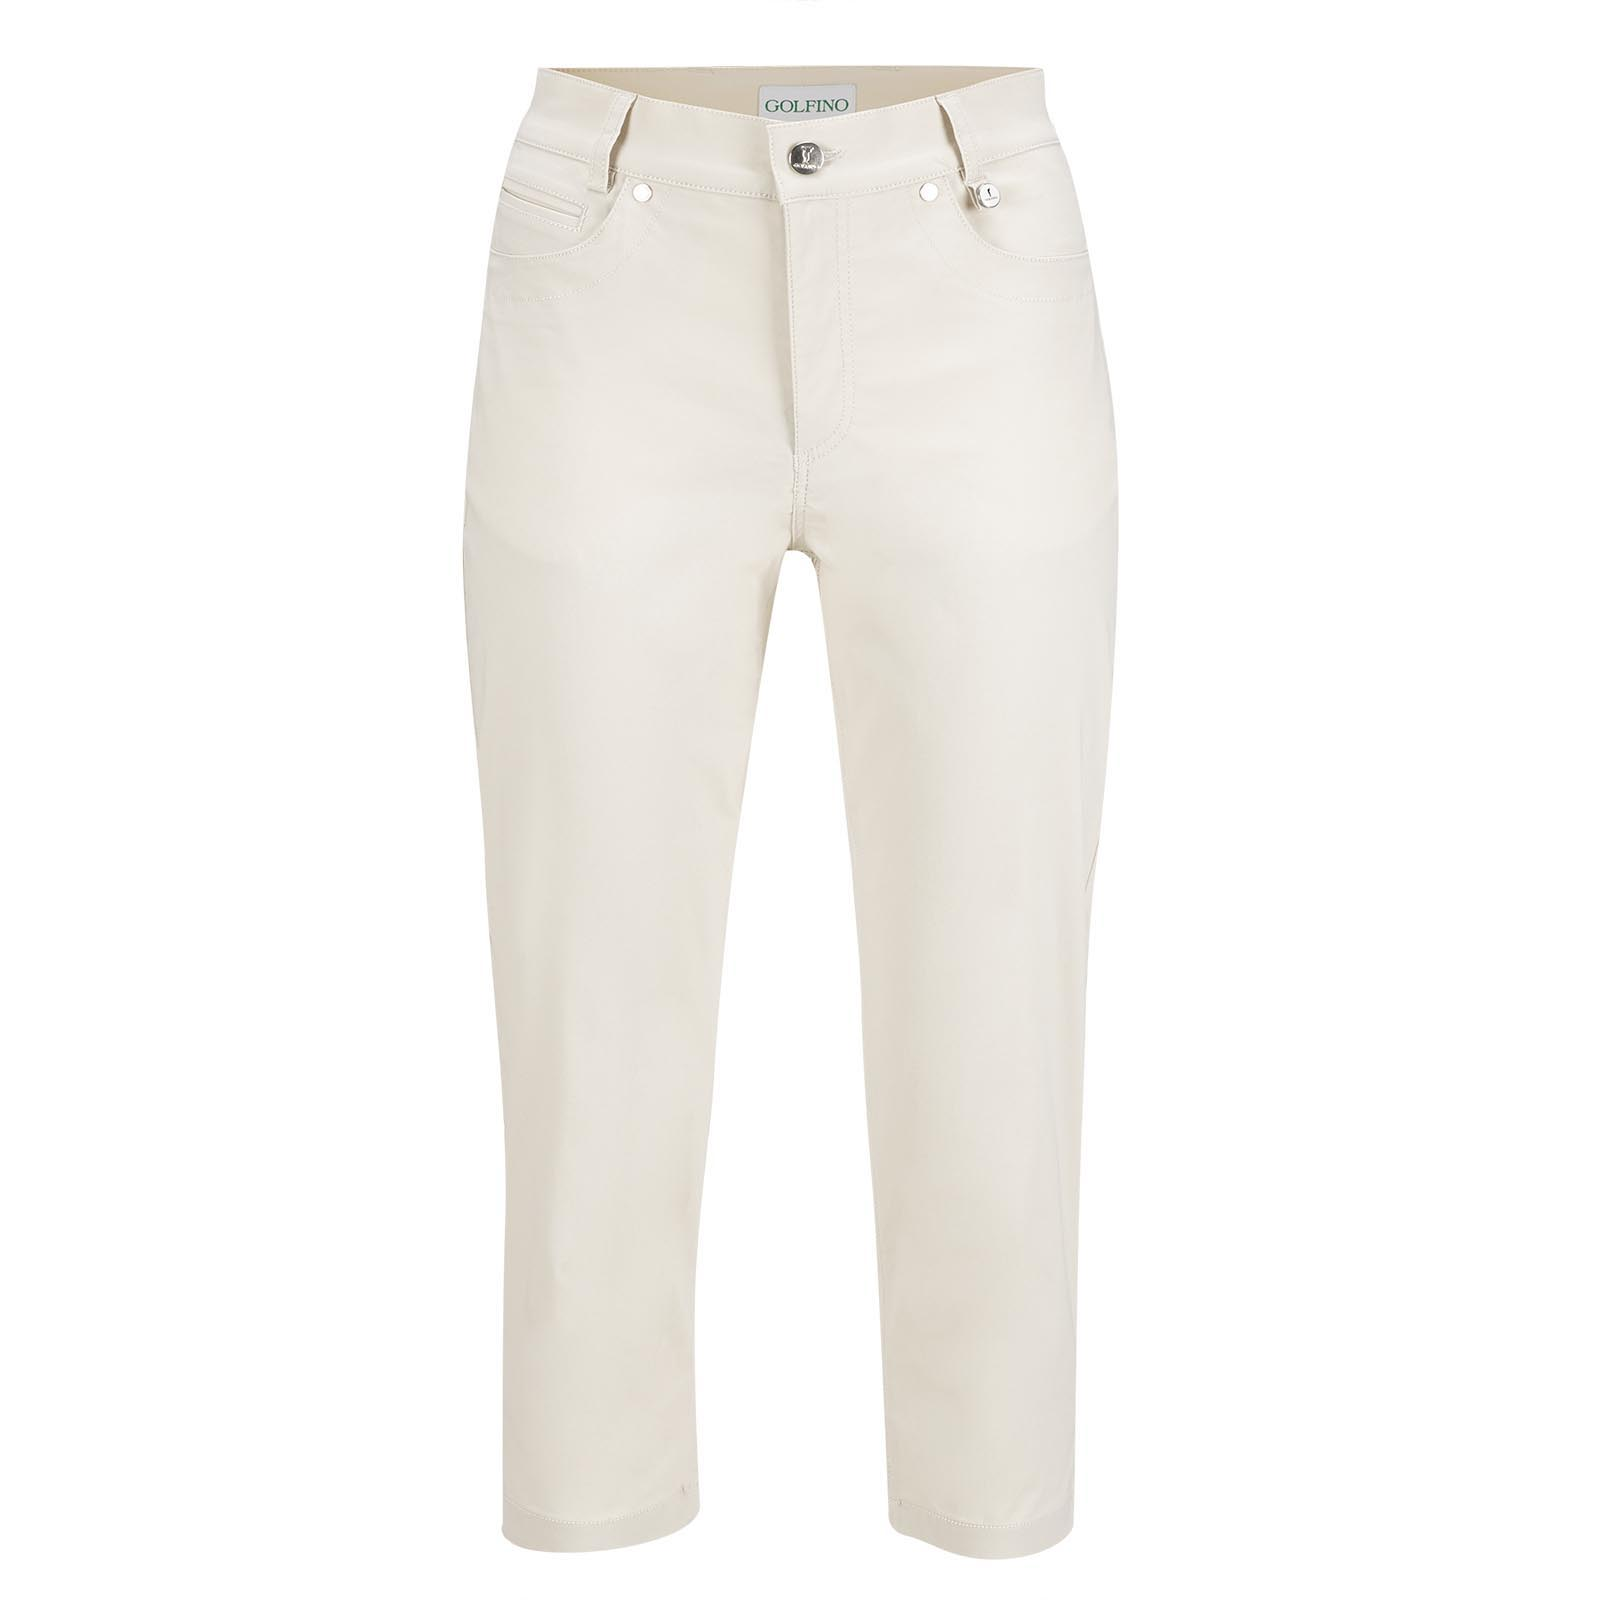 Golf Capri pants in cotton stretch with sun protection in slim fit